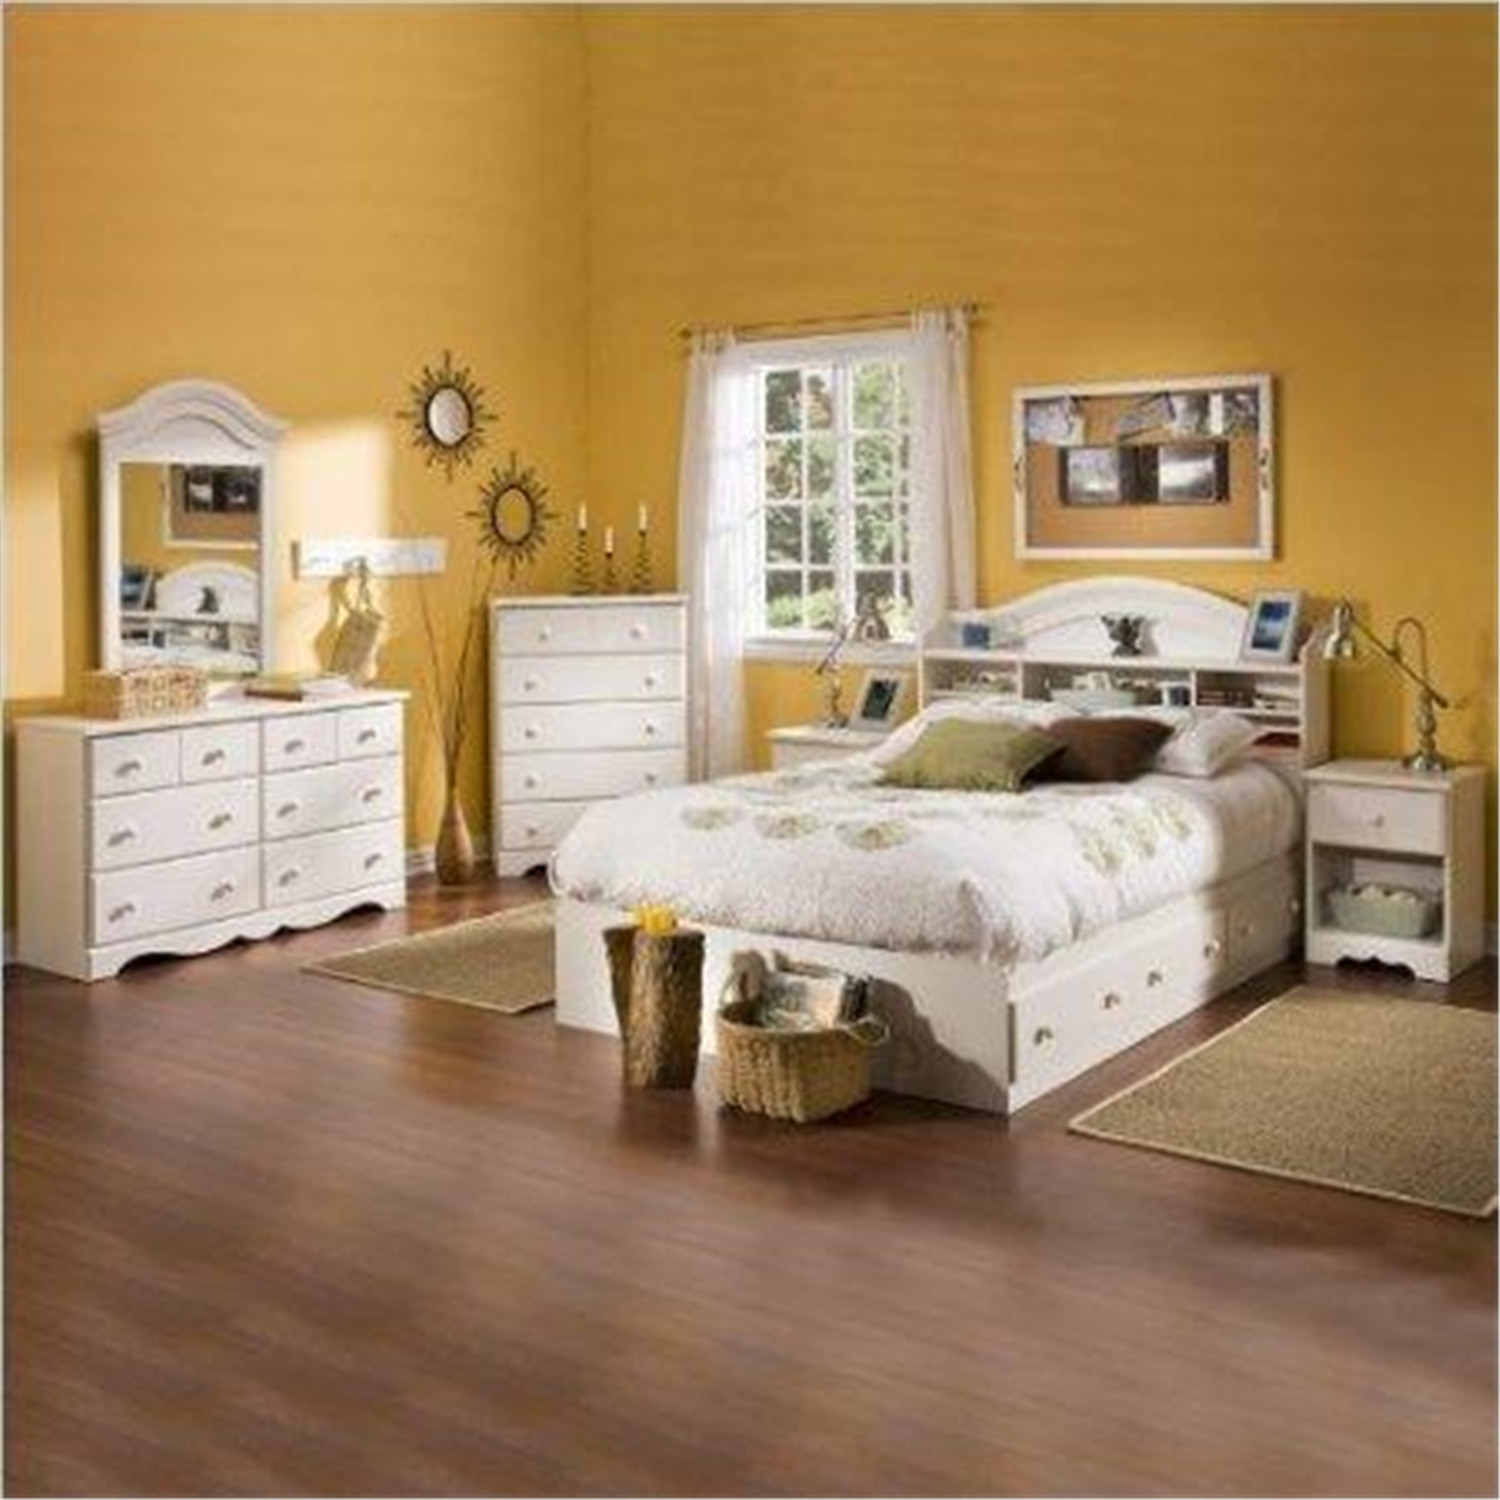 Kids full wood bookcase bed 4 piece bedroom set in white - South shore 4 piece bedroom furniture set ...